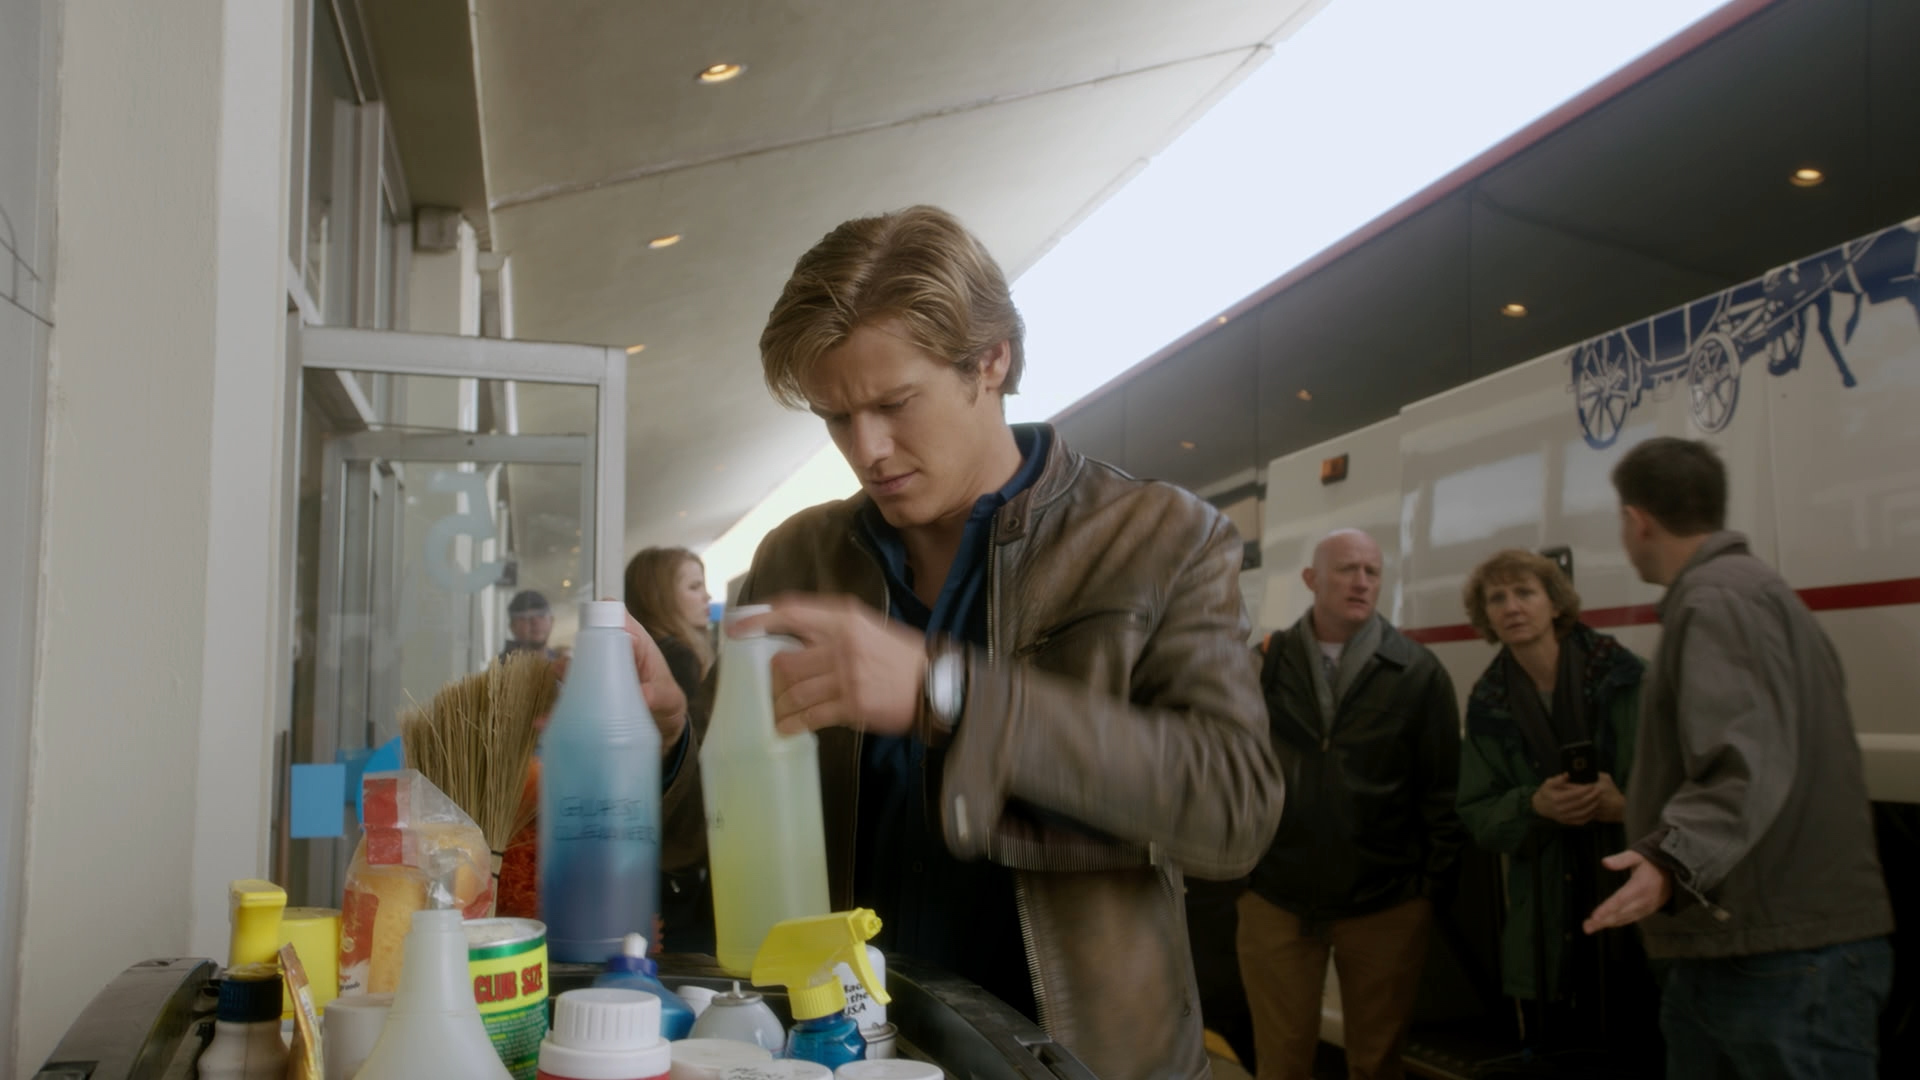 MacGyver rummages through cleaning products.